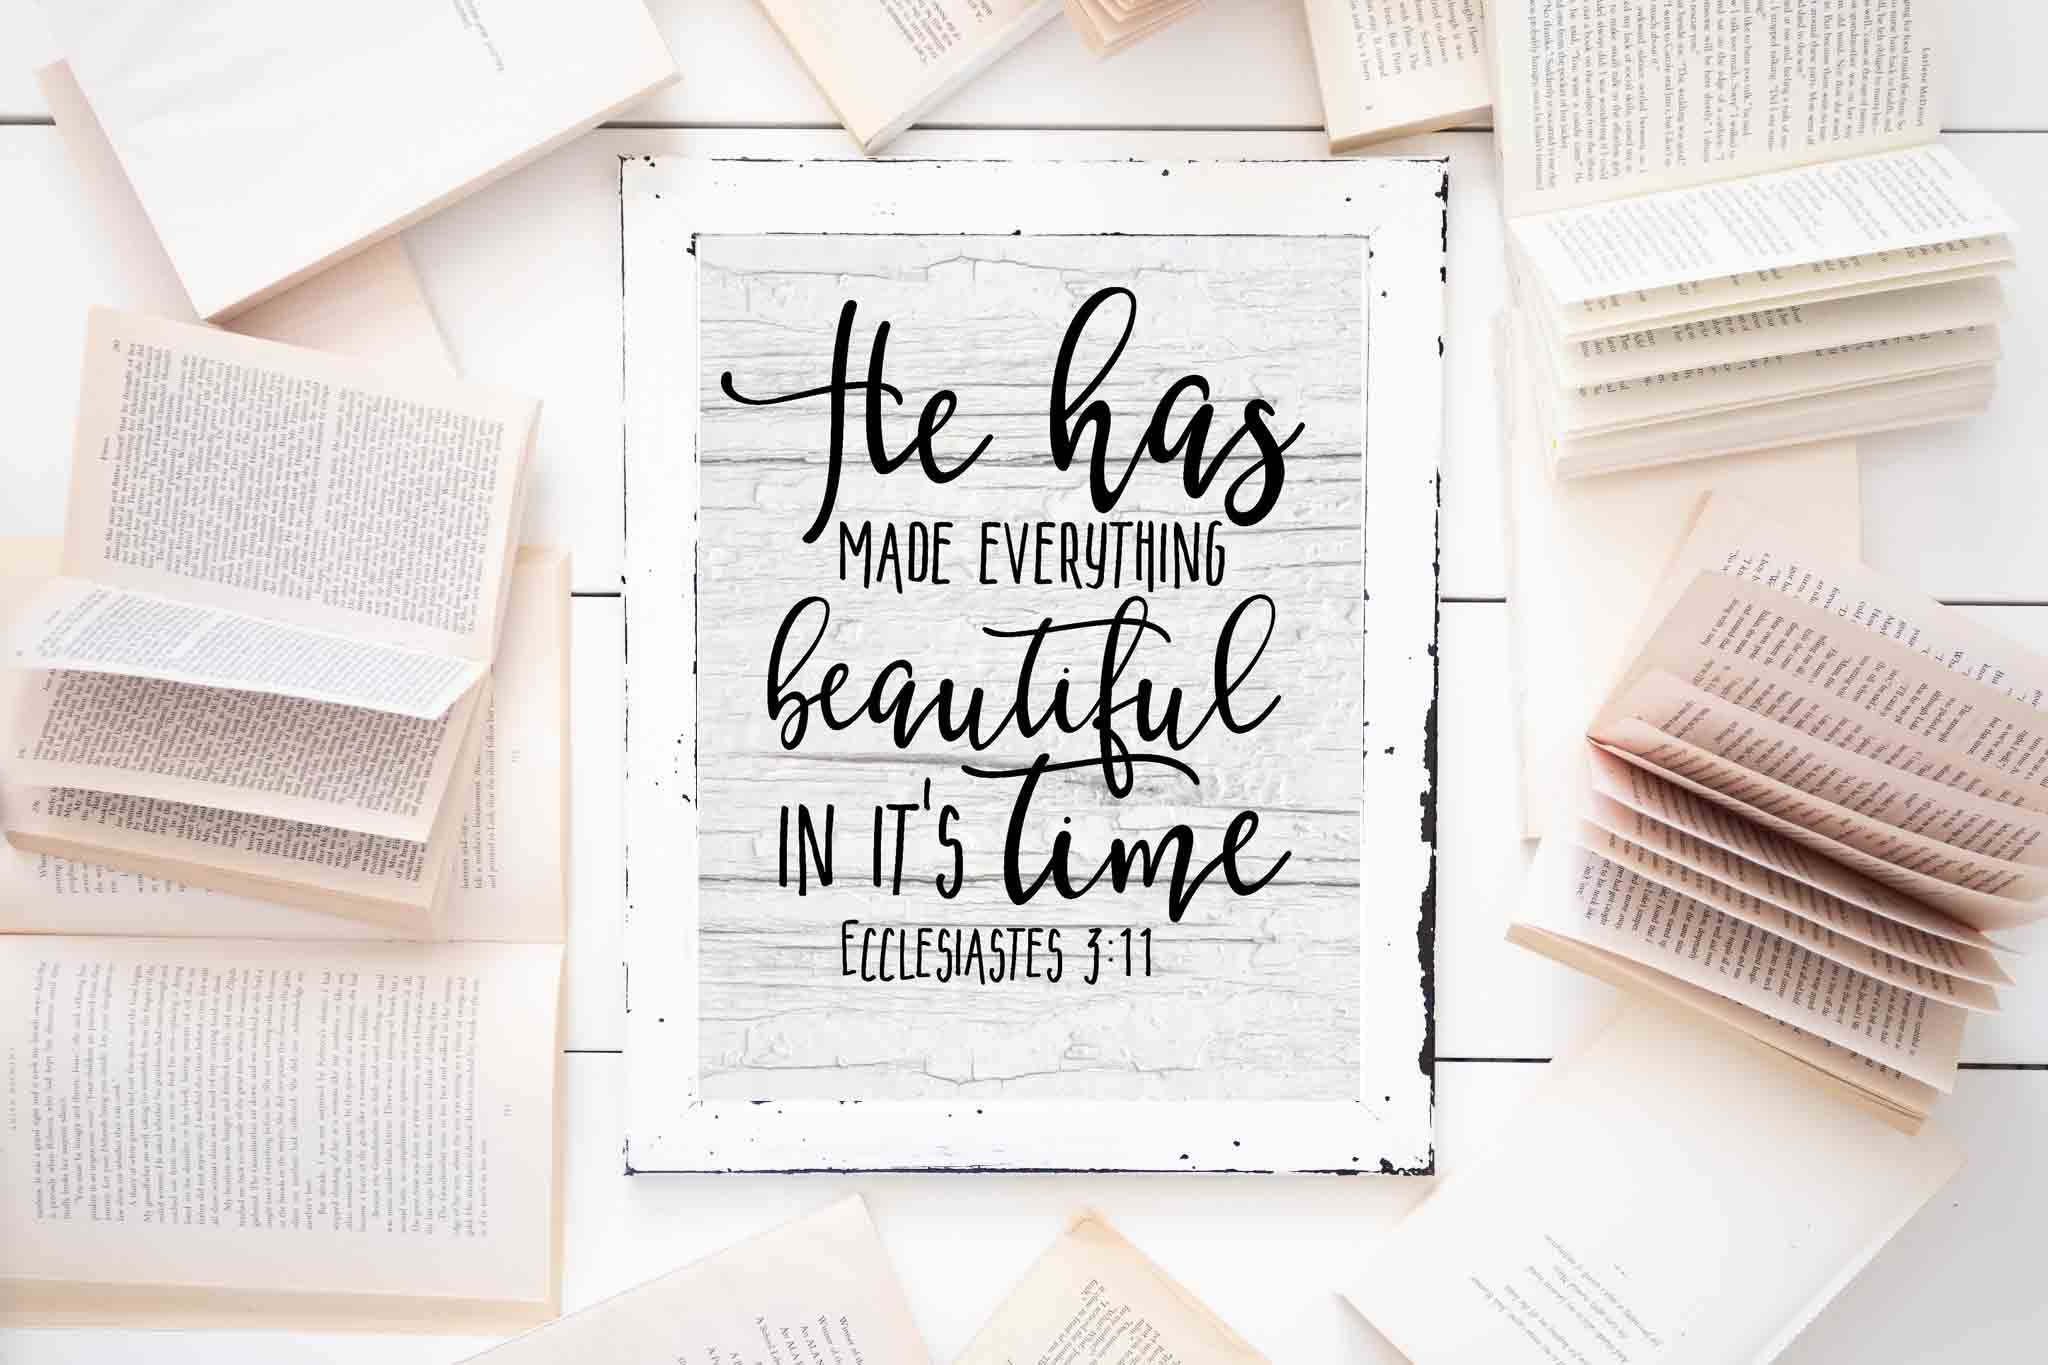 image regarding Free Printable Scripture Word Art referred to as Absolutely free Farmhouse Scripture Printables - The Mountain Watch Cottage